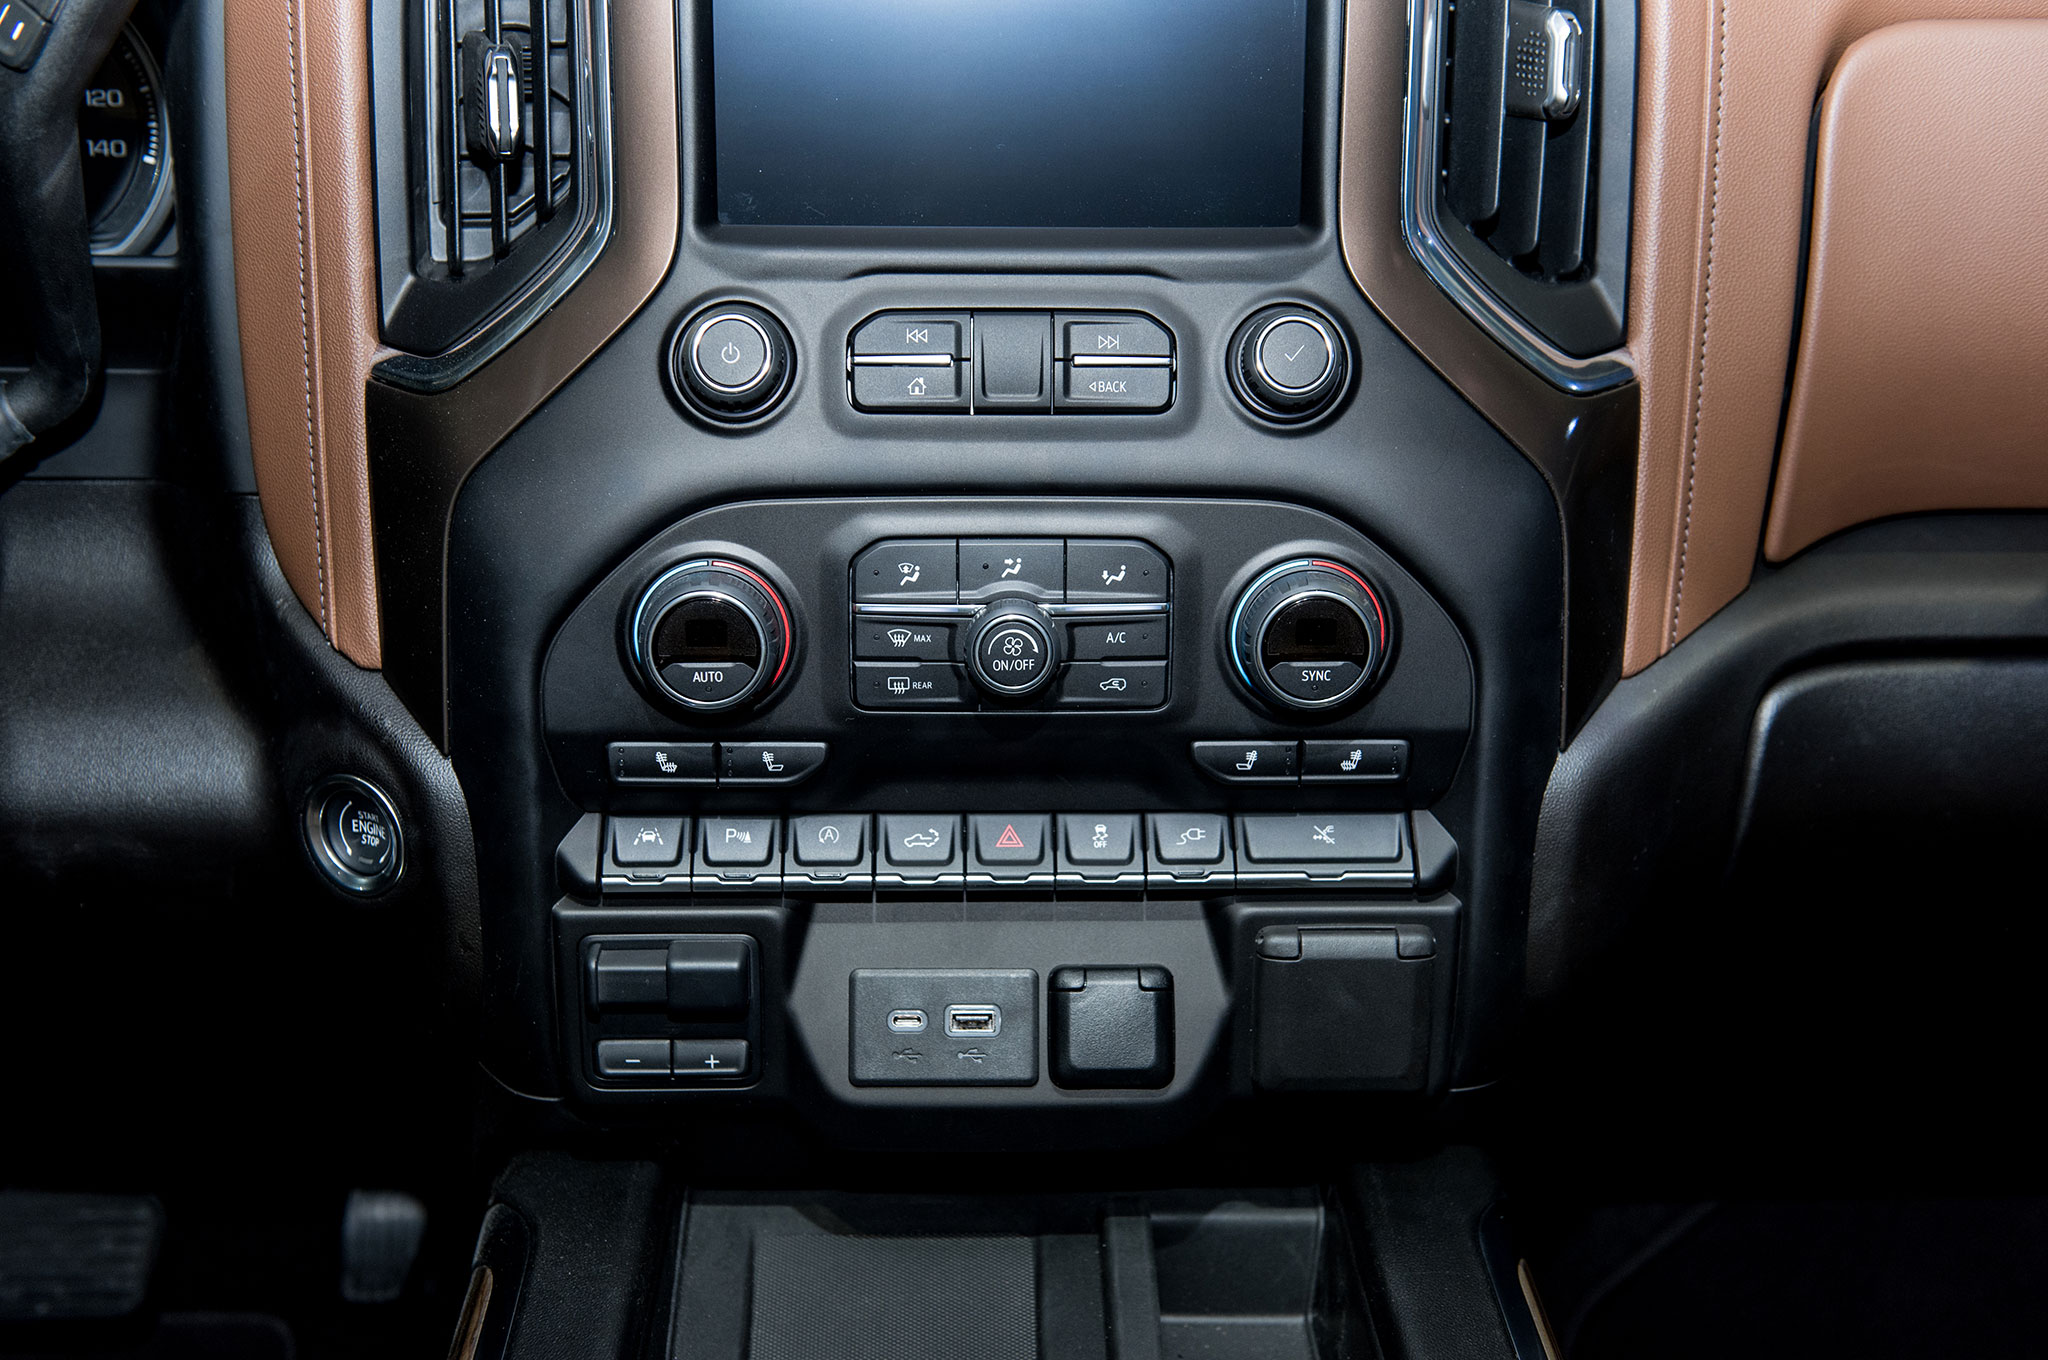 2019 Chevrolet Silverado 1500 High Country Interior Center